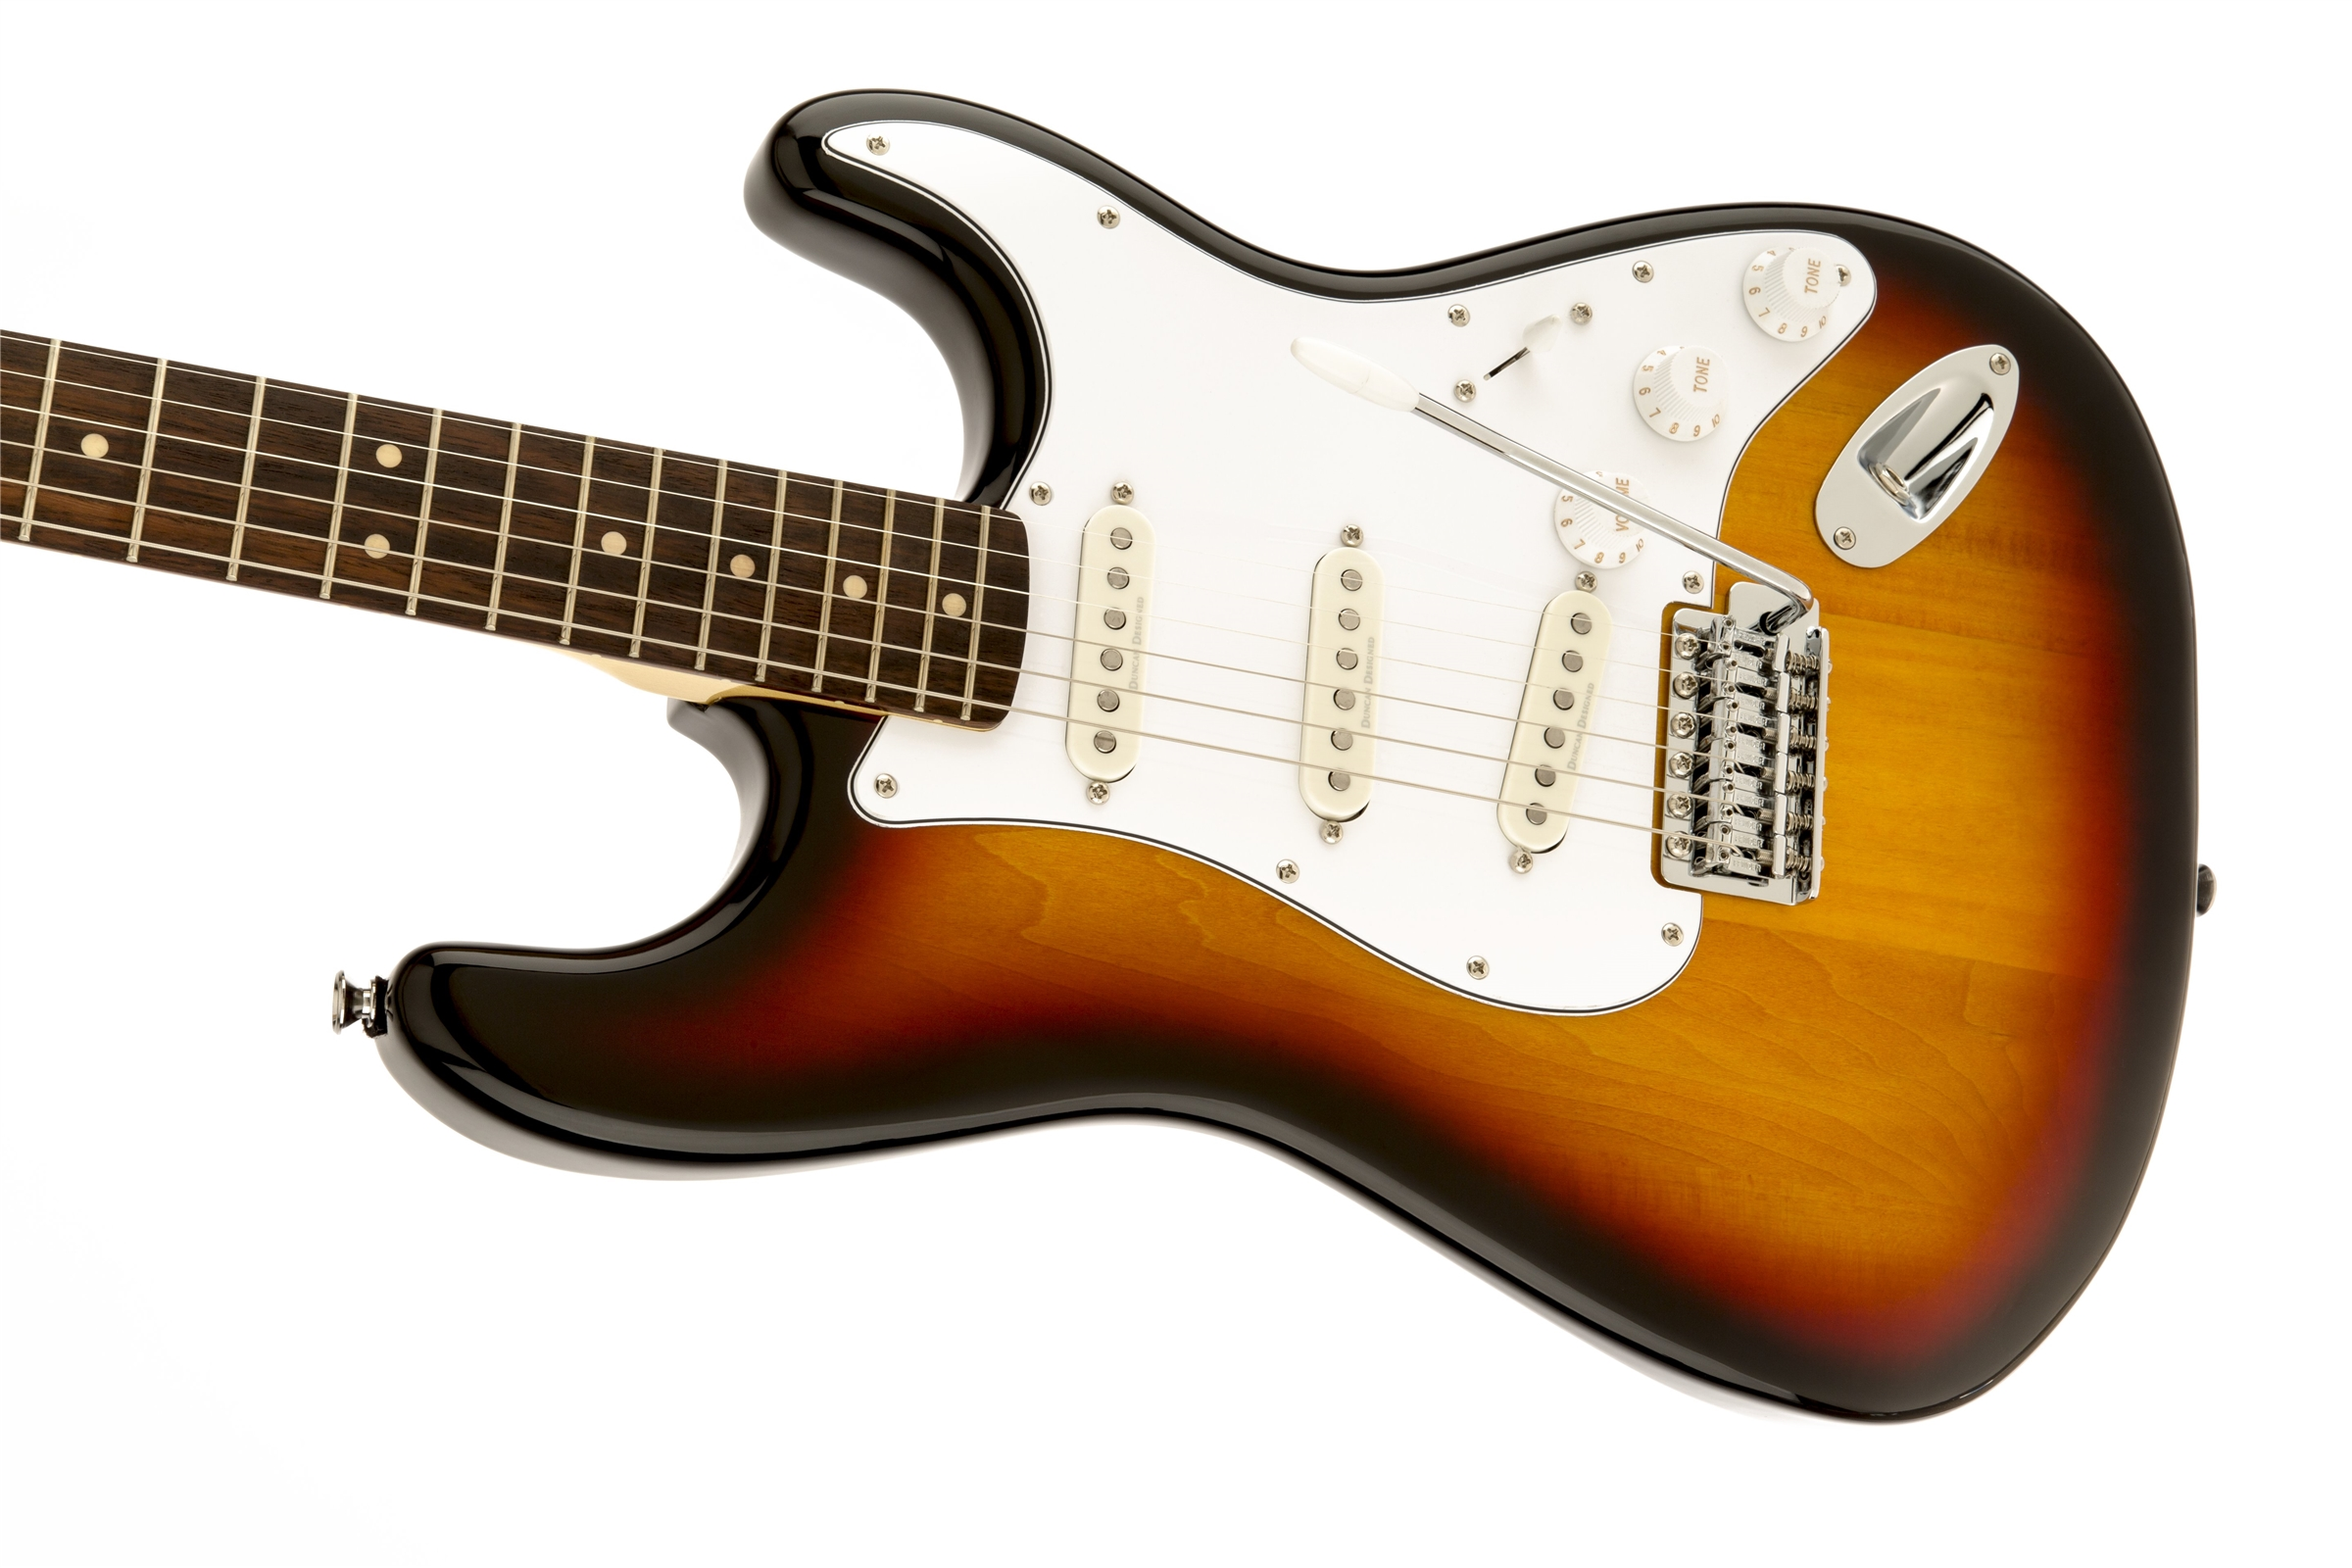 vintage modified stratocaster squier electric guitars. Black Bedroom Furniture Sets. Home Design Ideas